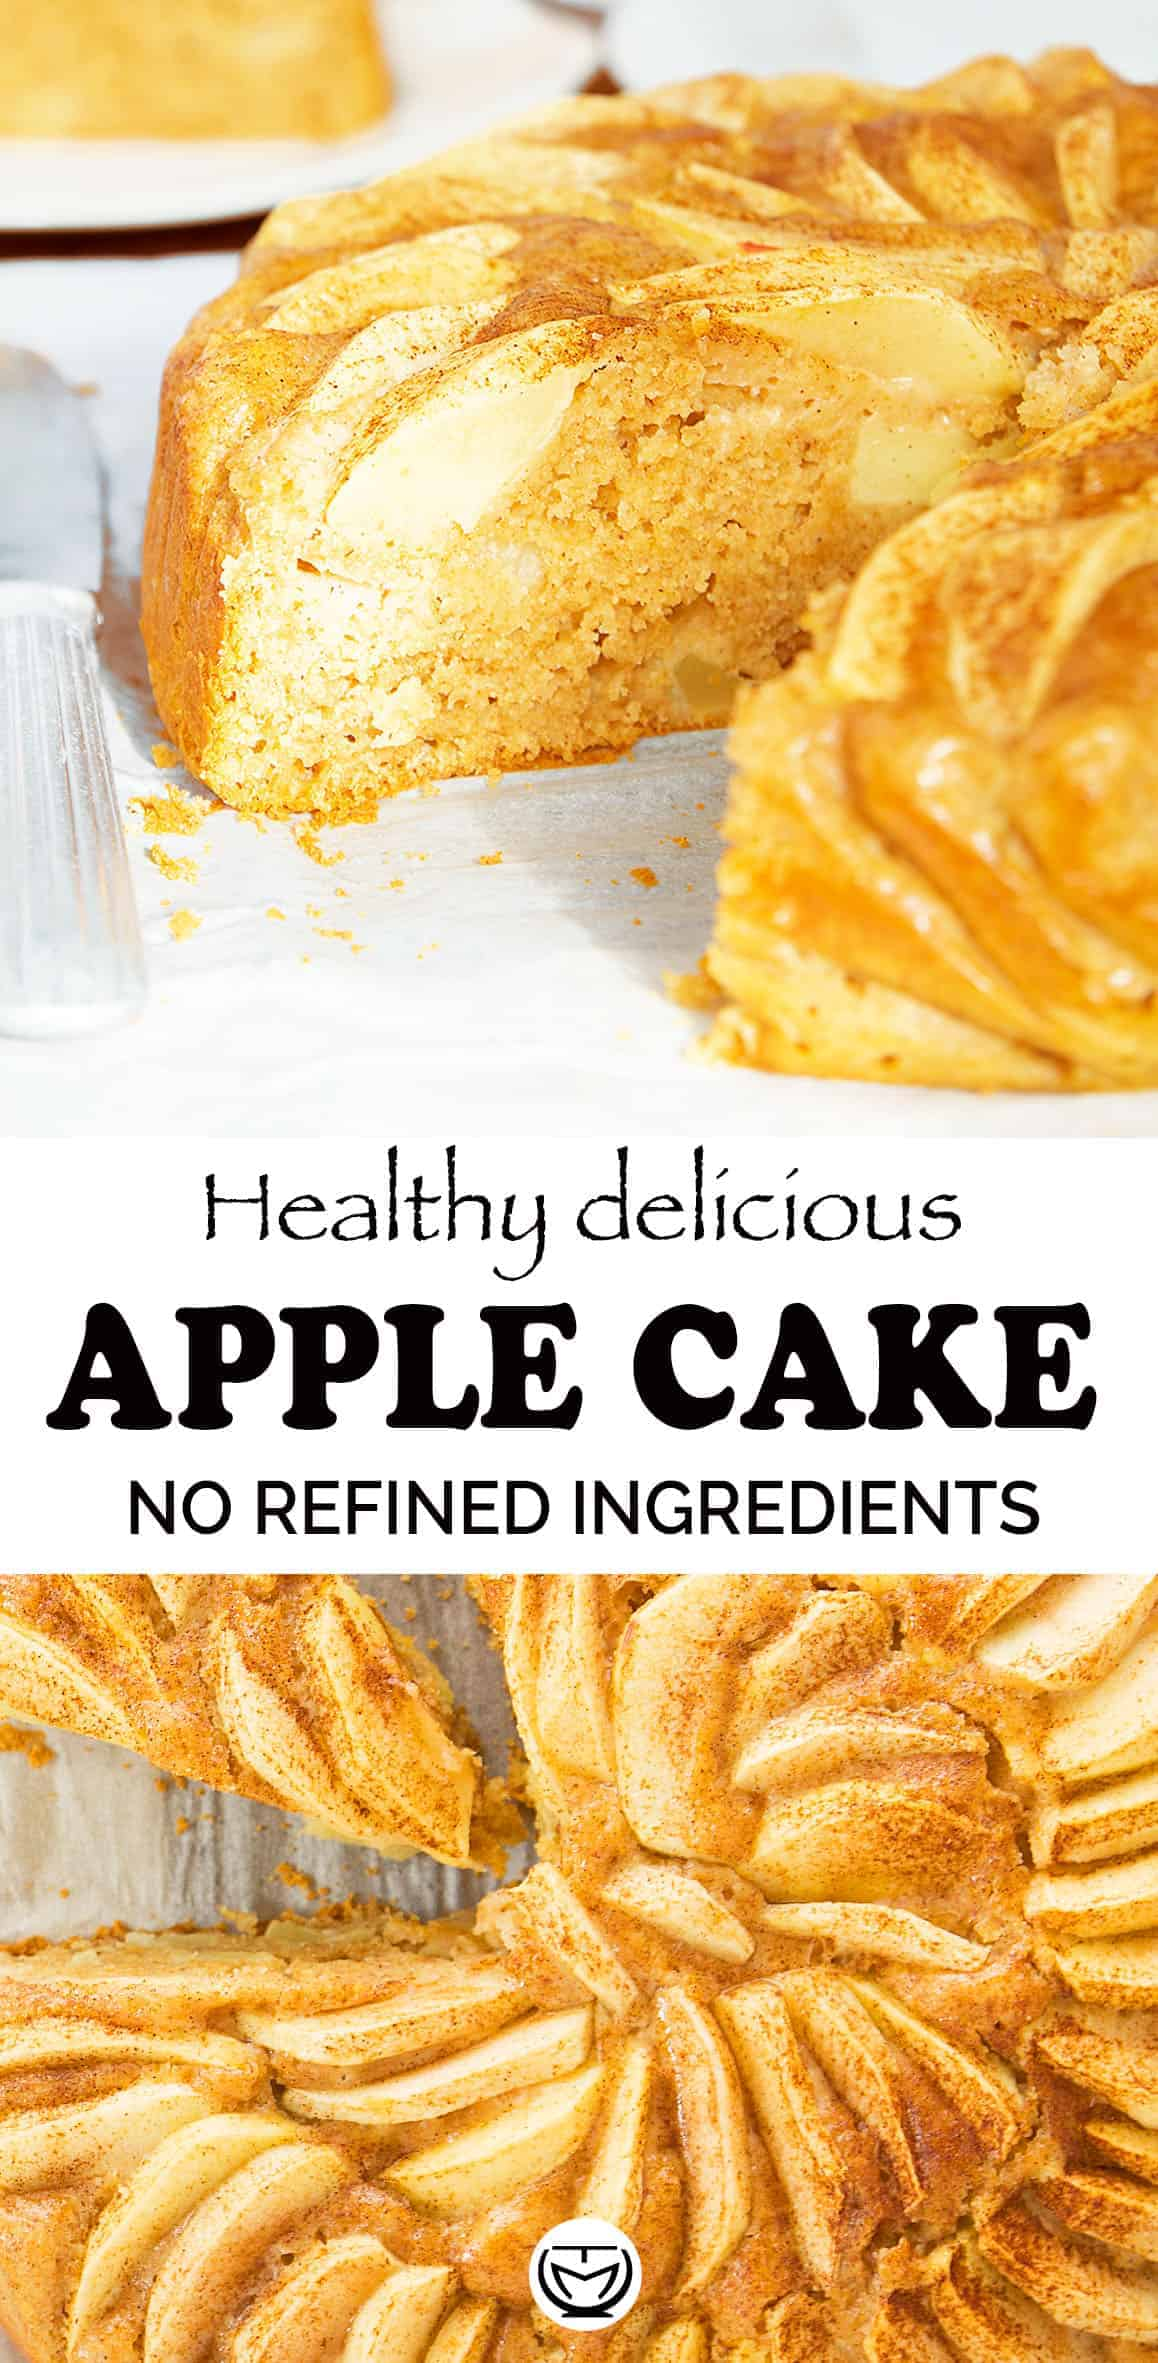 A delicious, wholesome apple cake loaded with fresh crunchy apples and yogurt.